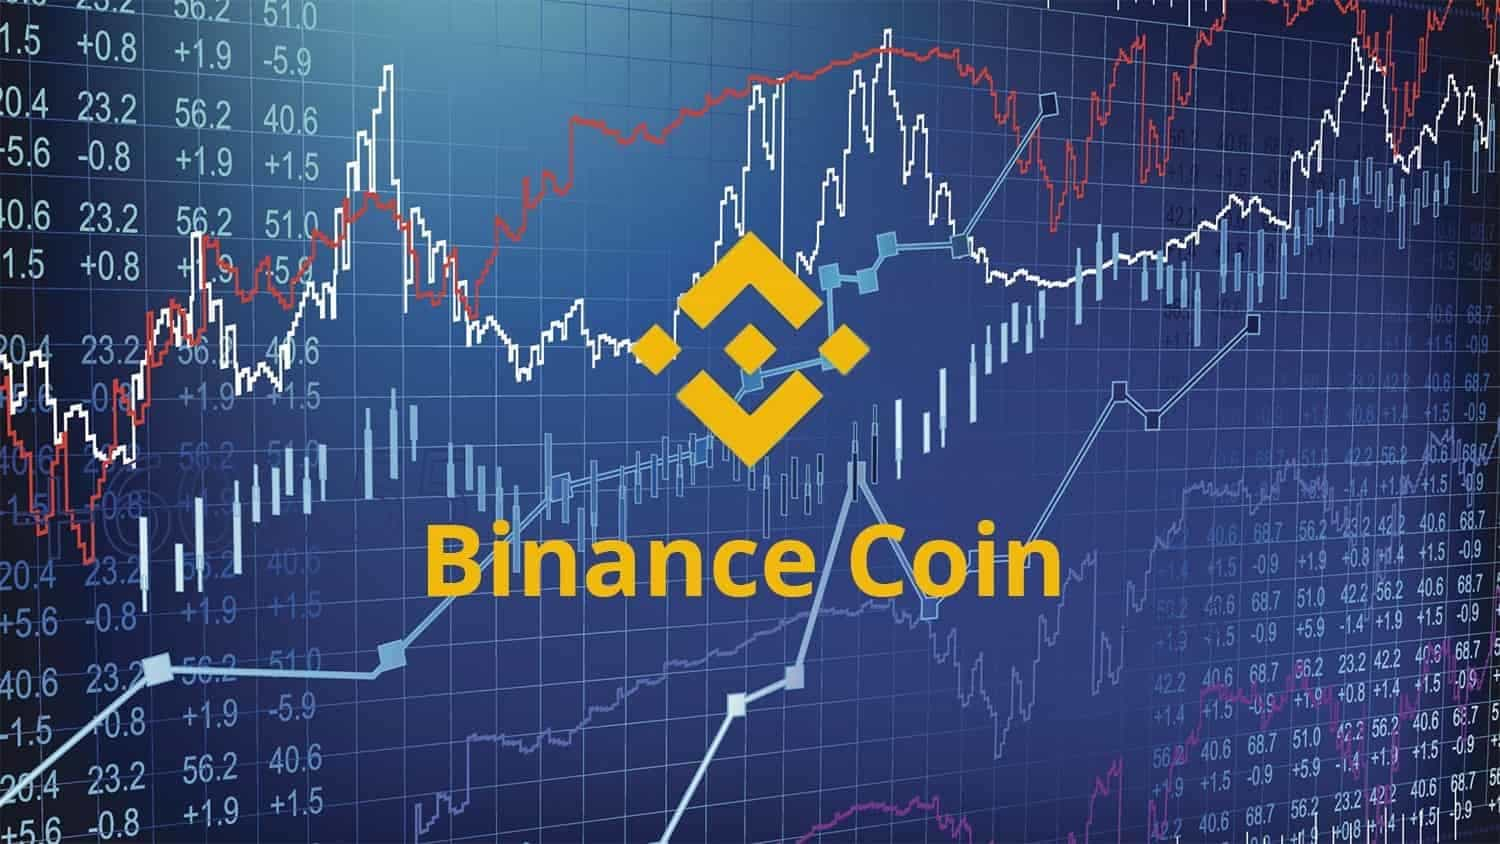 монета binance coin